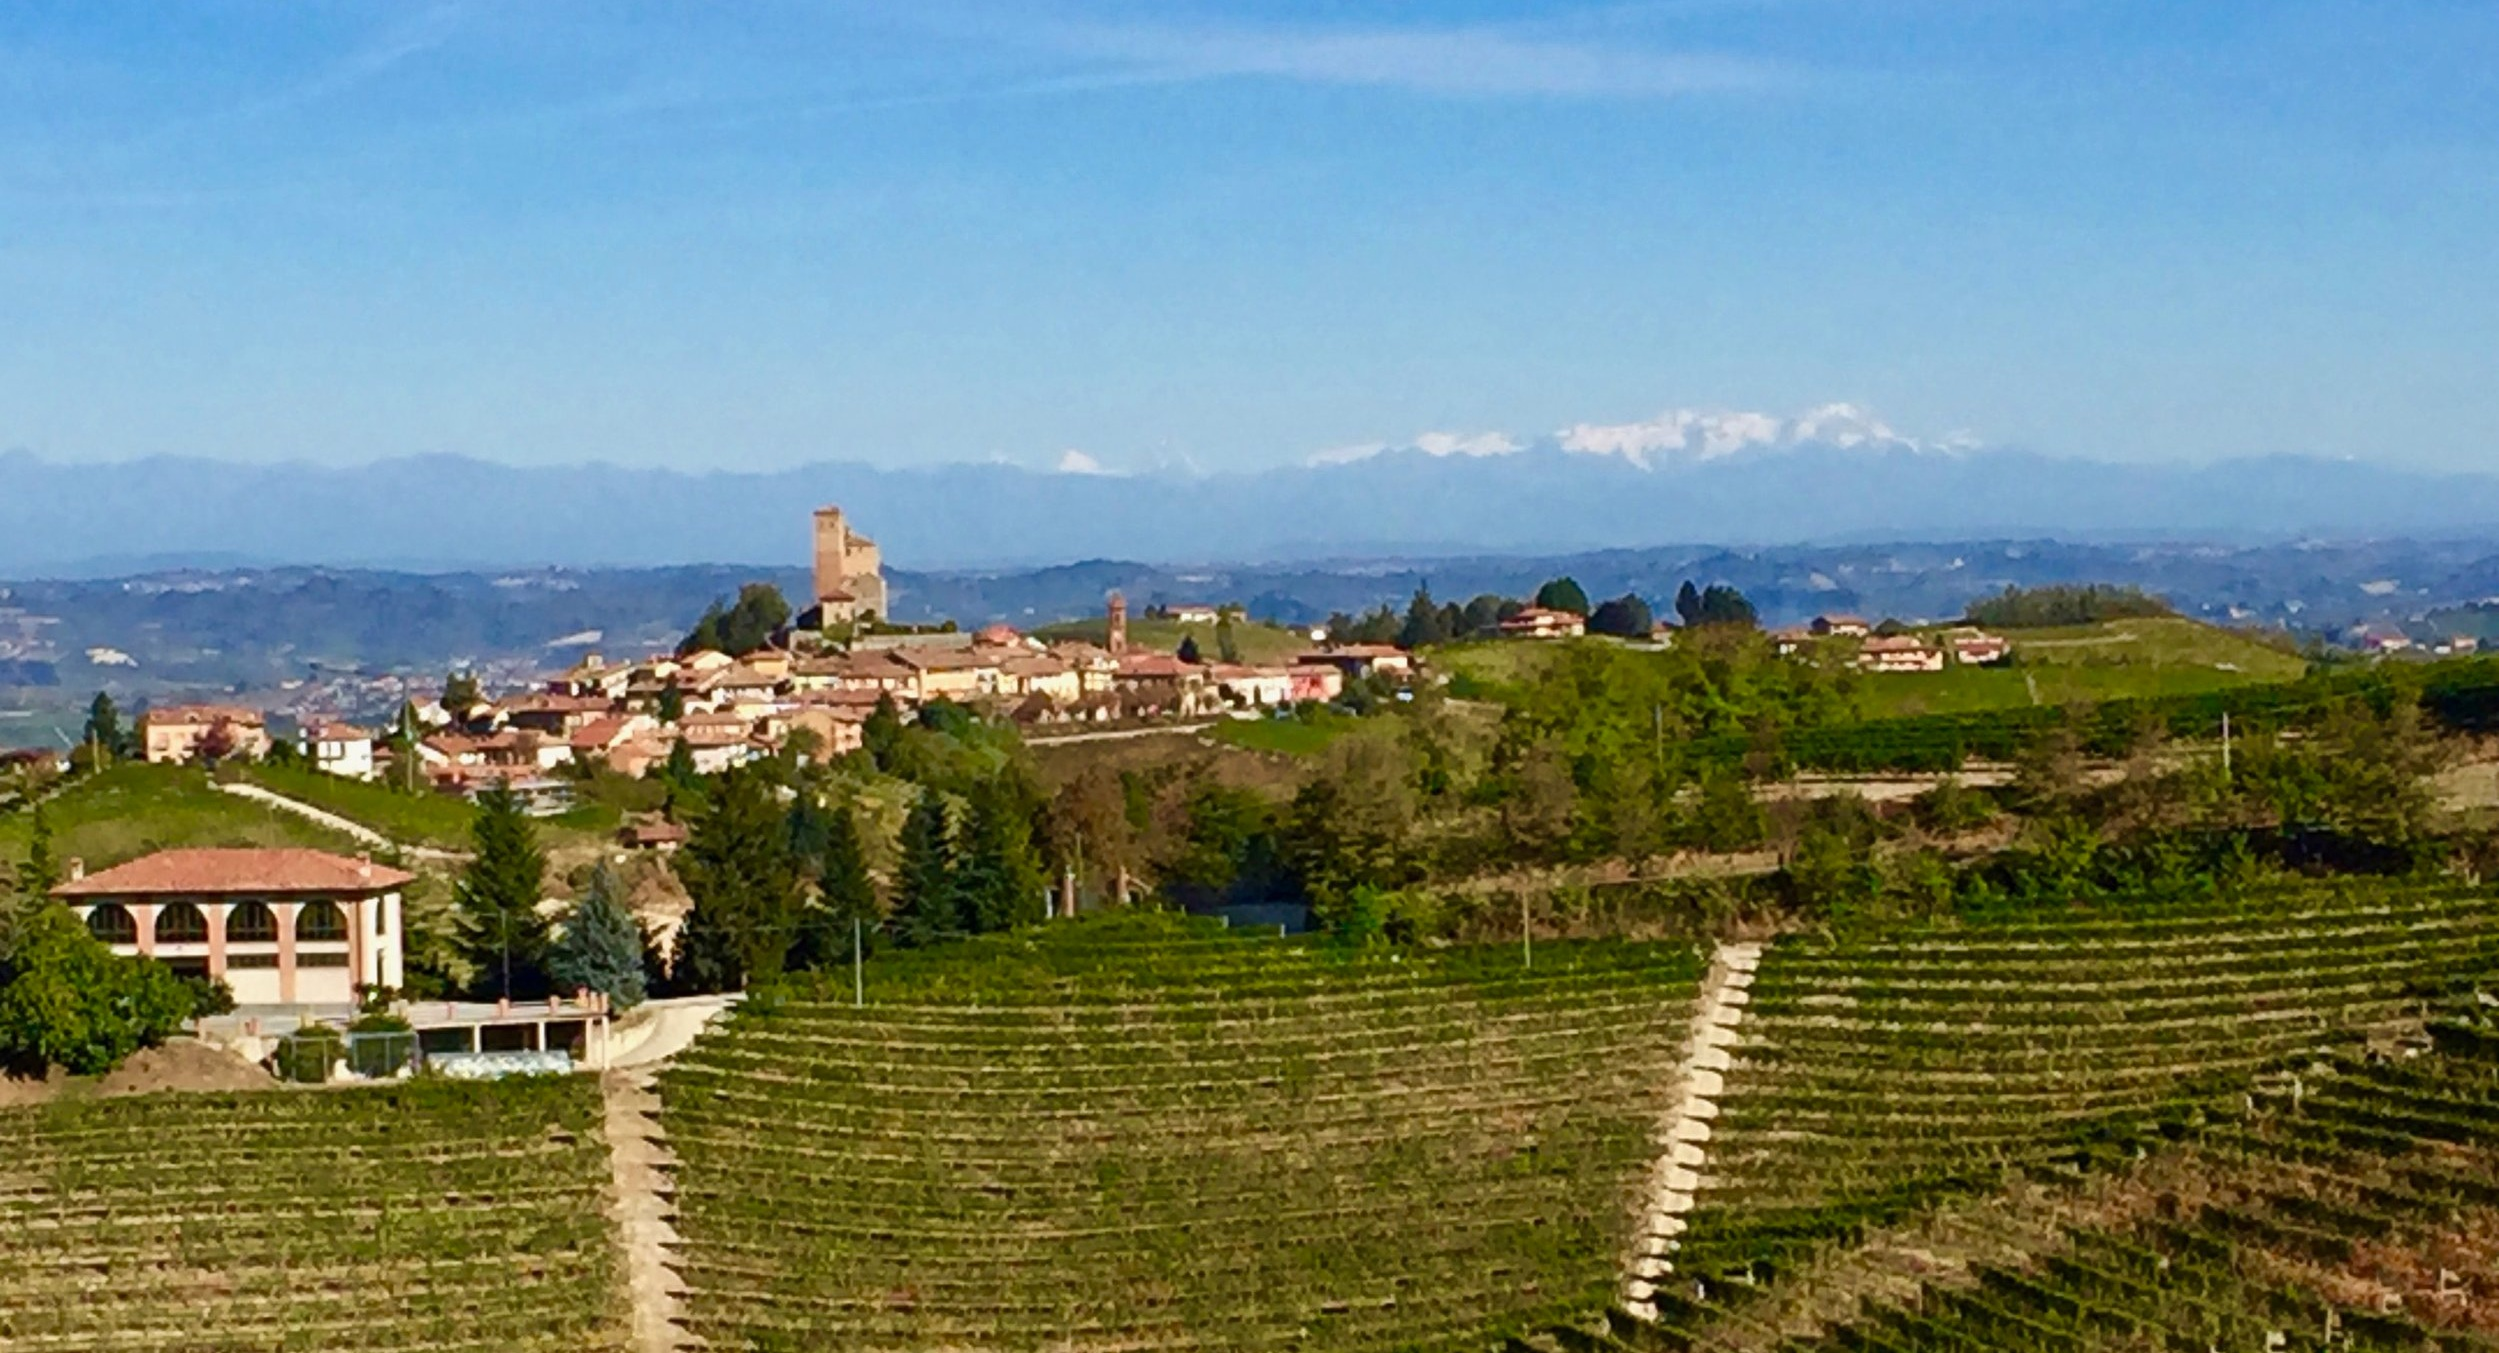 Serralunga d'Alba with the Alps in the background